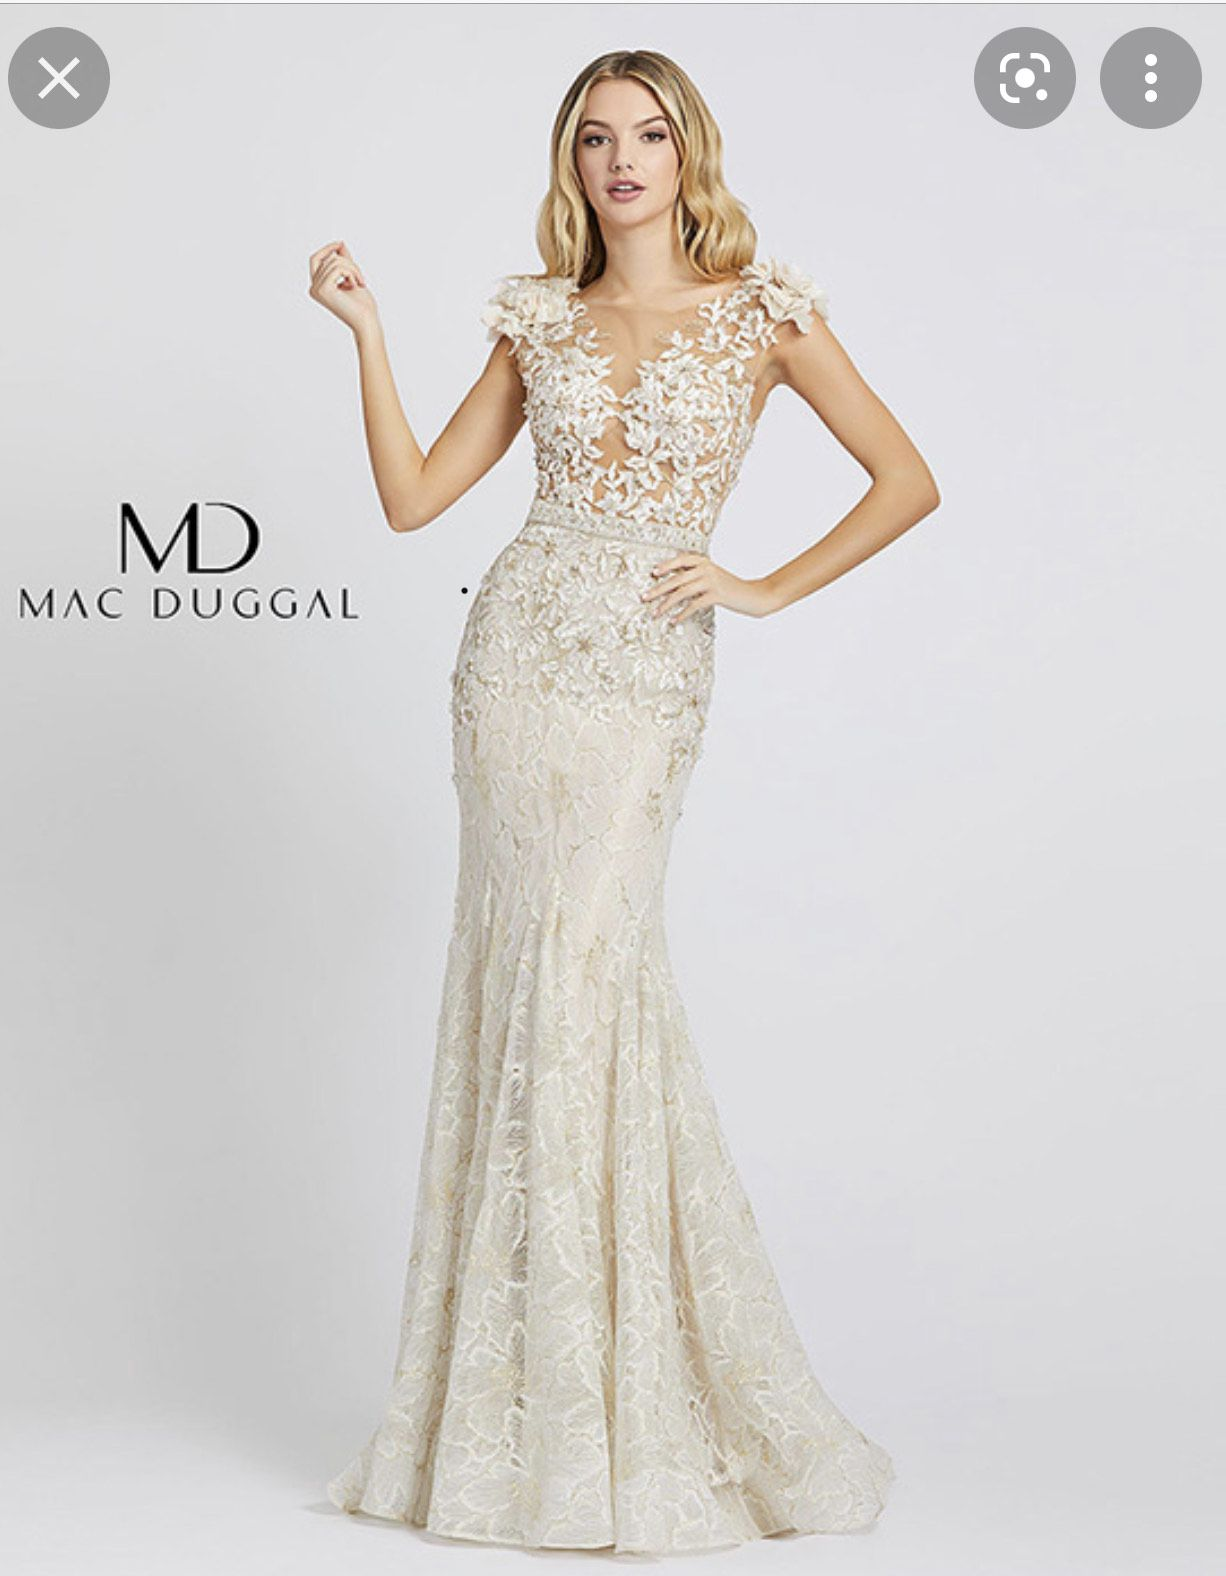 Mac Duggal White Size 6 Floral Embroidery Wedding Mermaid Dress on Queenly